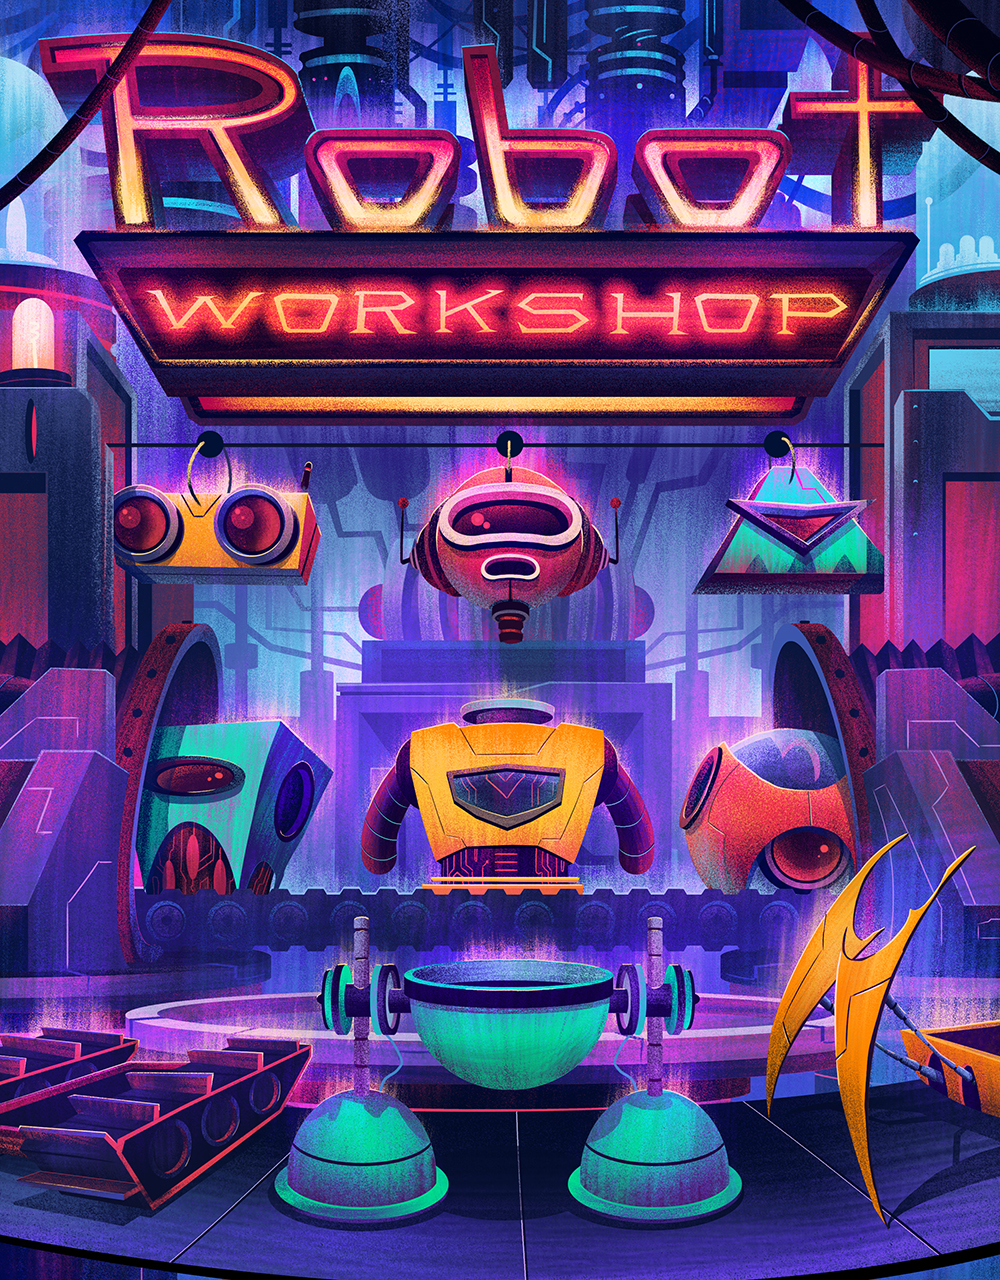 Robot Workshop · 2014 · Cover